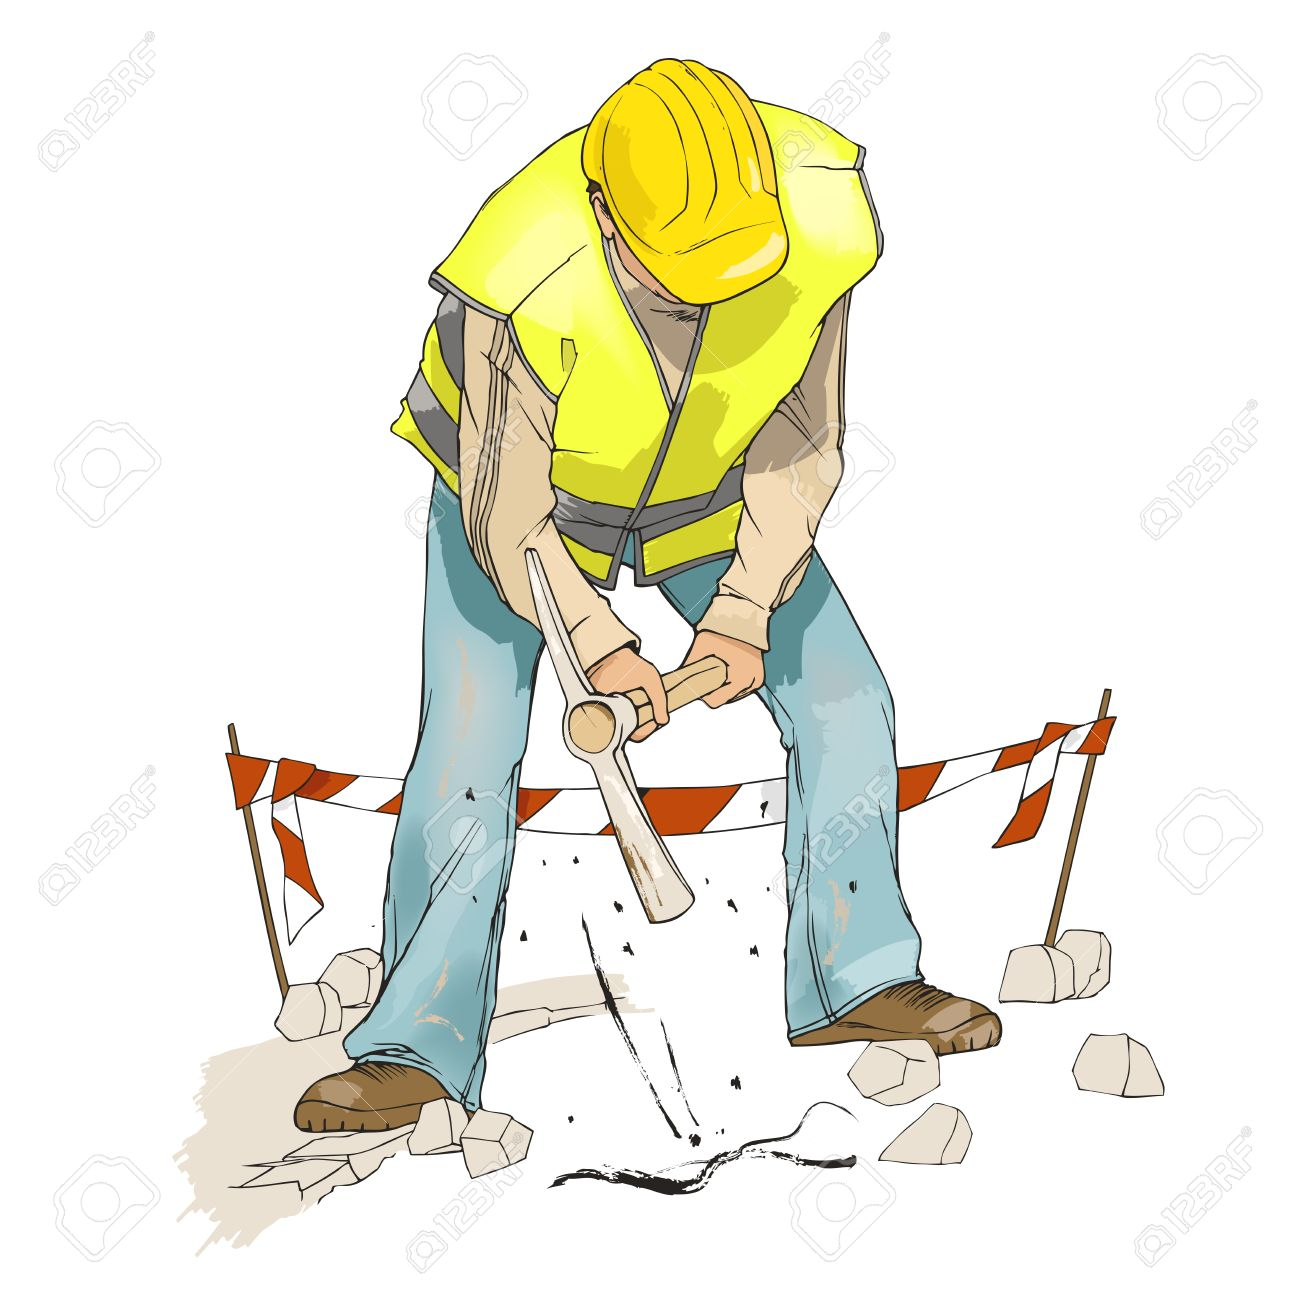 Civil Construction Man Digging With Pick Wearing A Yellow Helmet And Reflective Vest